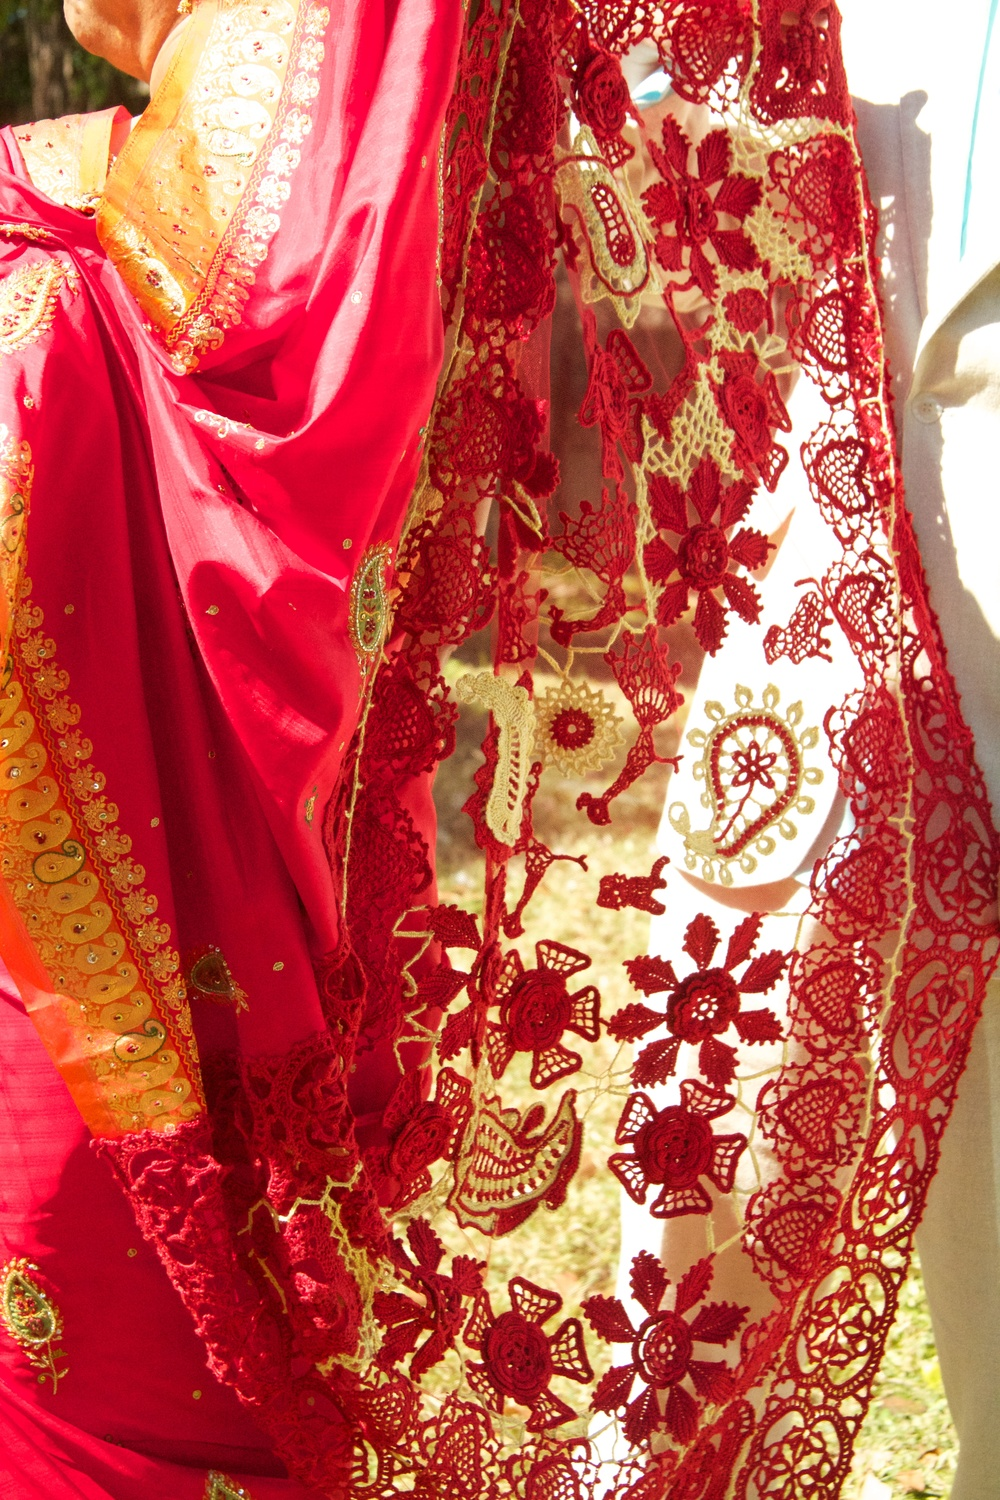 Detail of the crocheted pallu.